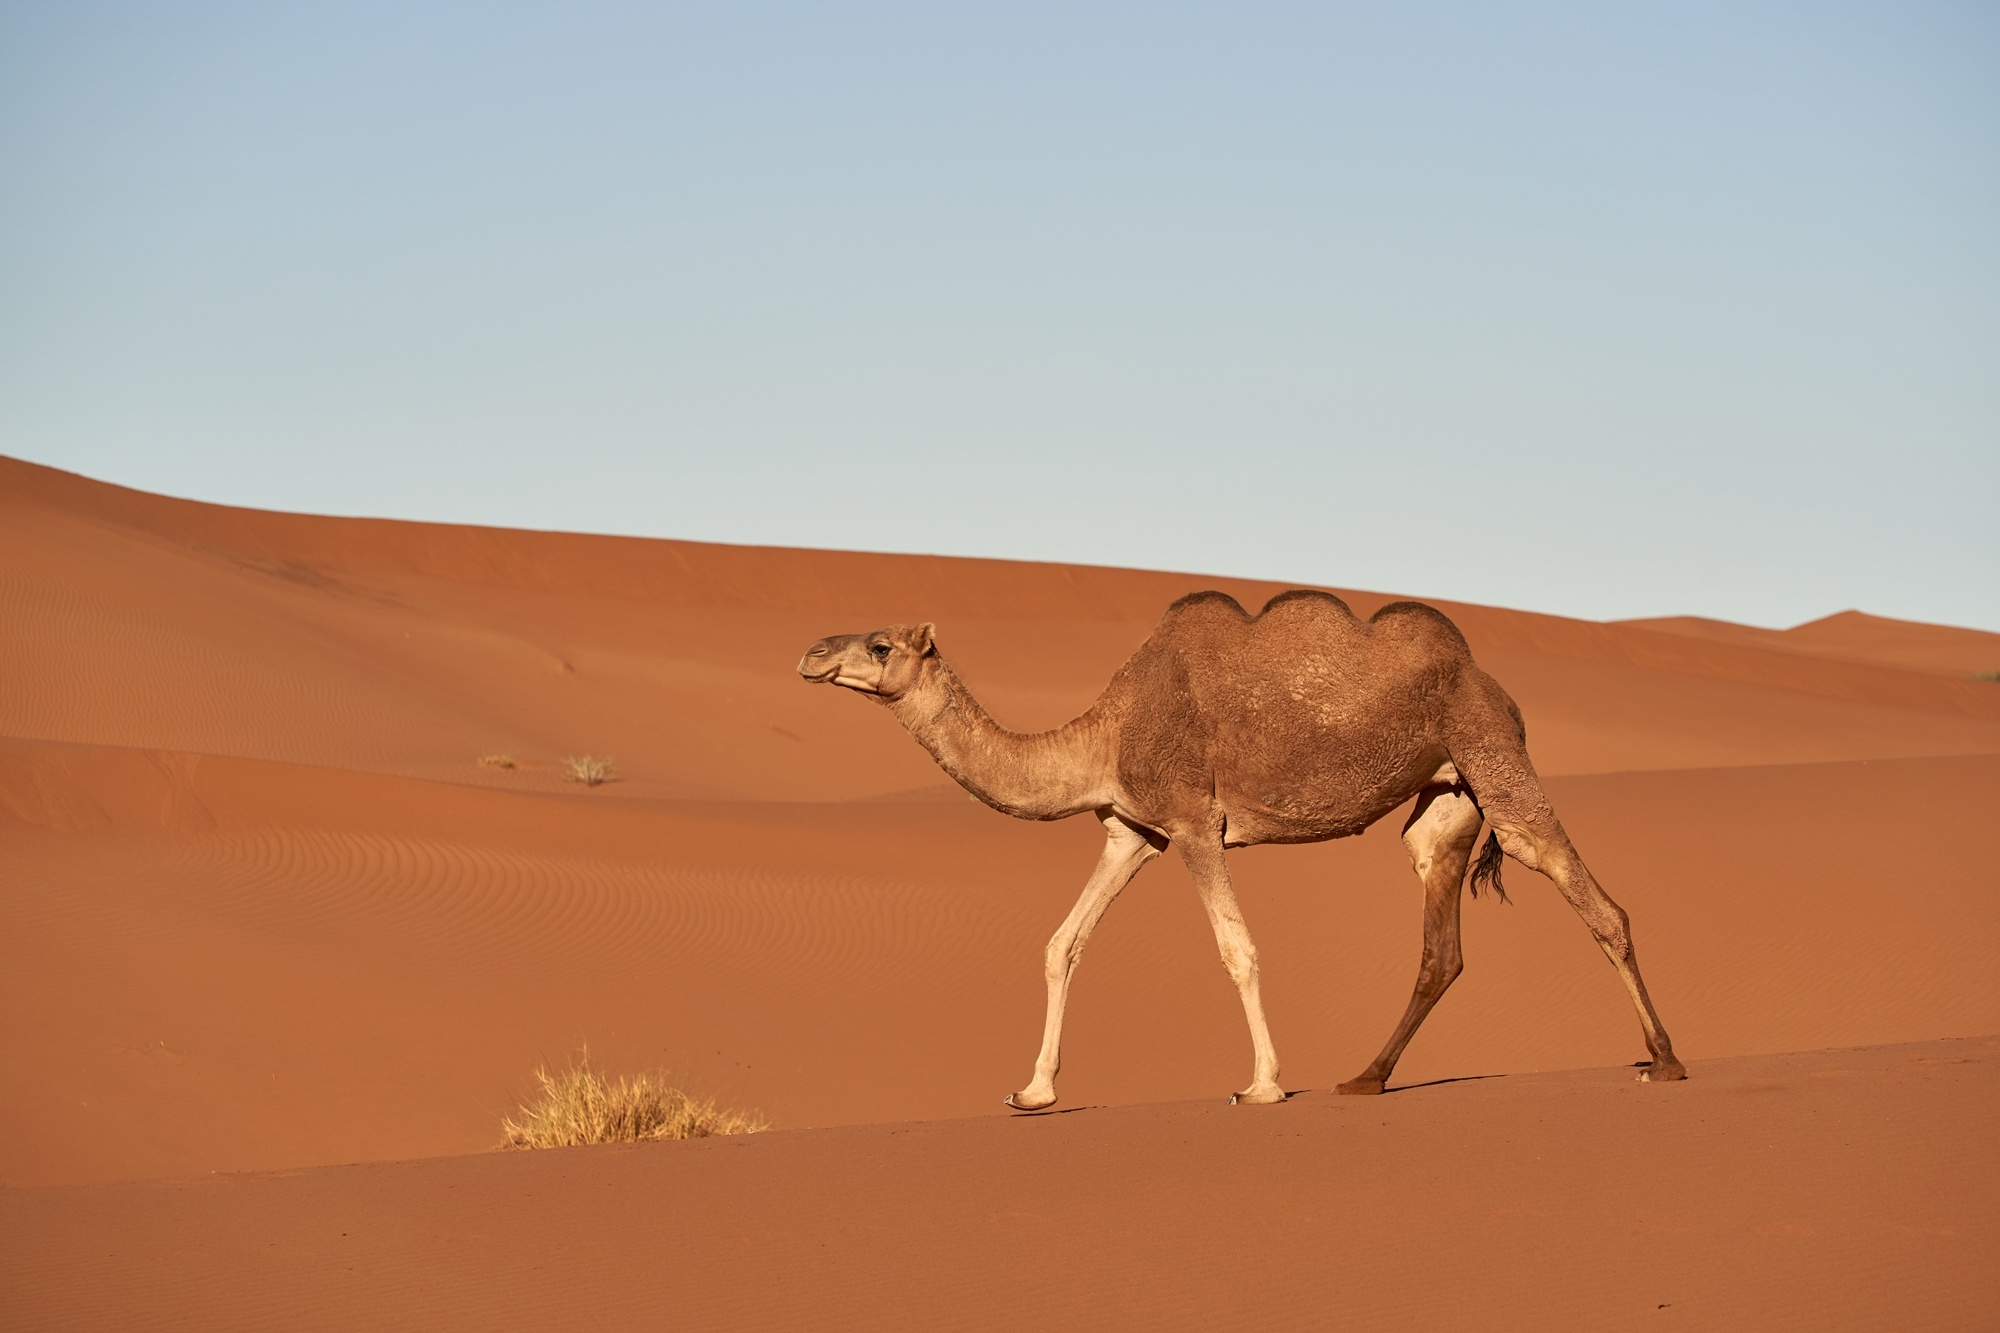 A three-humped camel discovered on the Arabian Peninsula